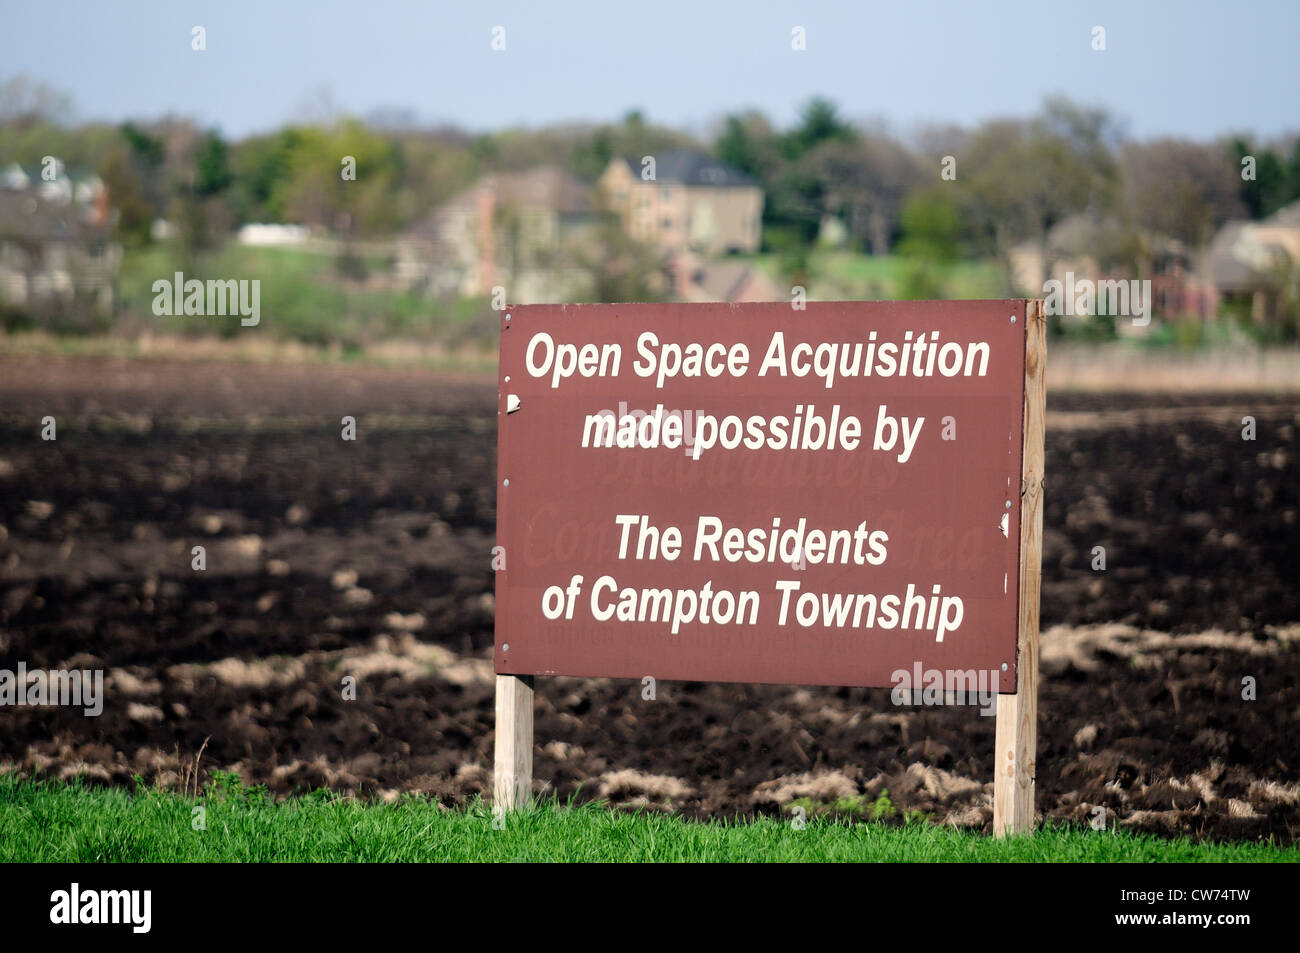 Agricultural land being acquired by communities to be used as open space or home development. - Stock Image